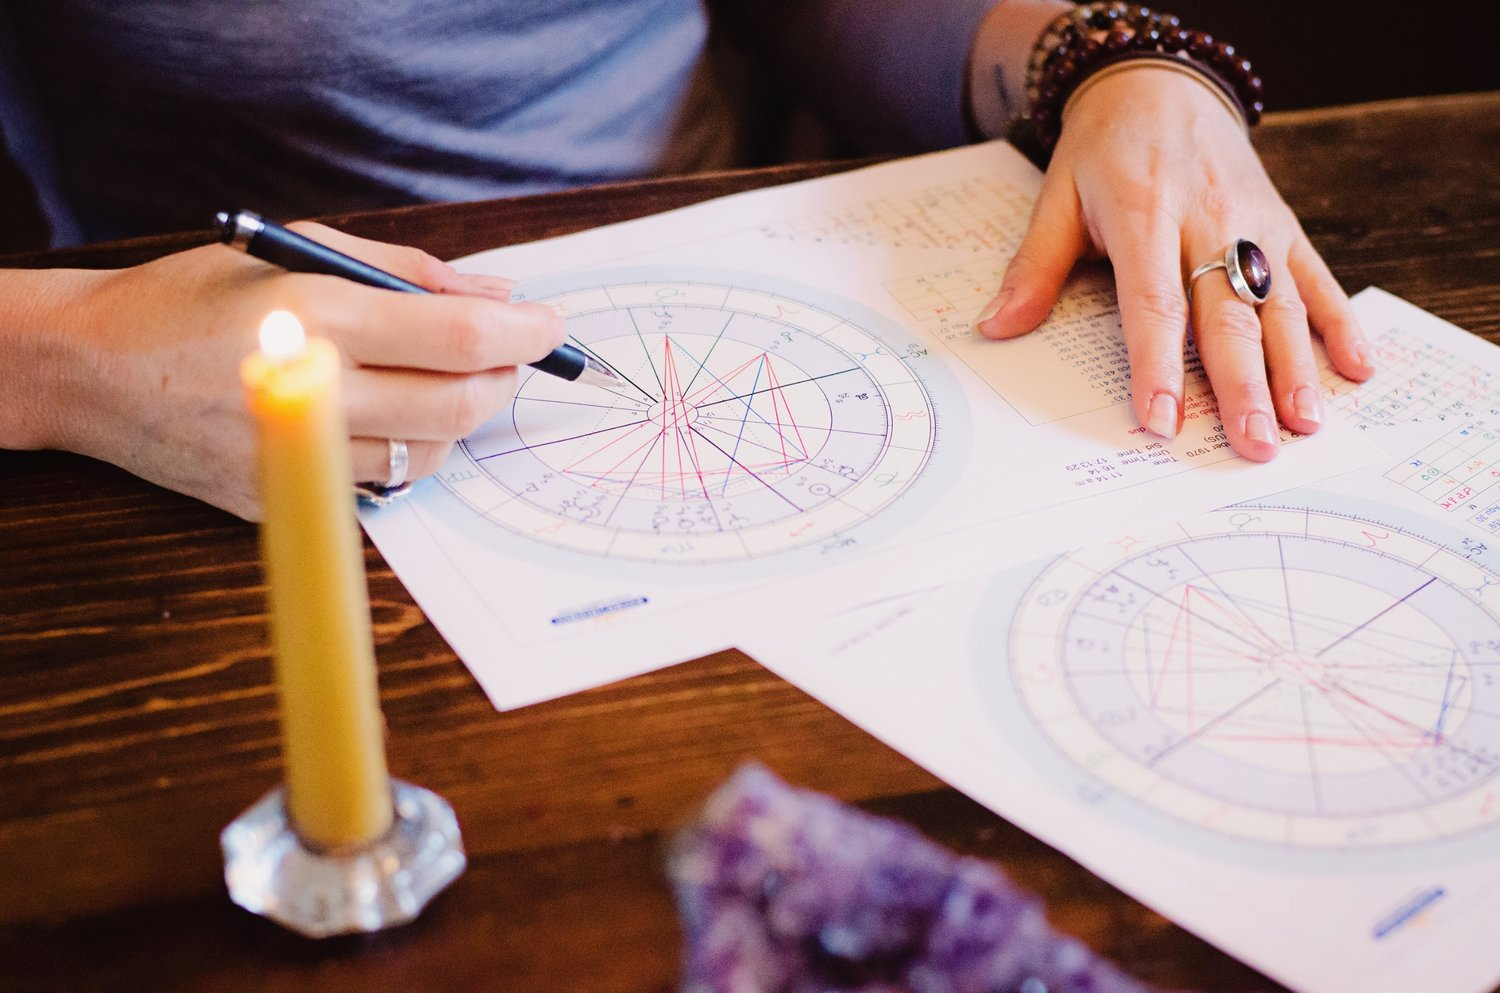 Passion, Connection & The Stars: An Interview with Astrologer Tara